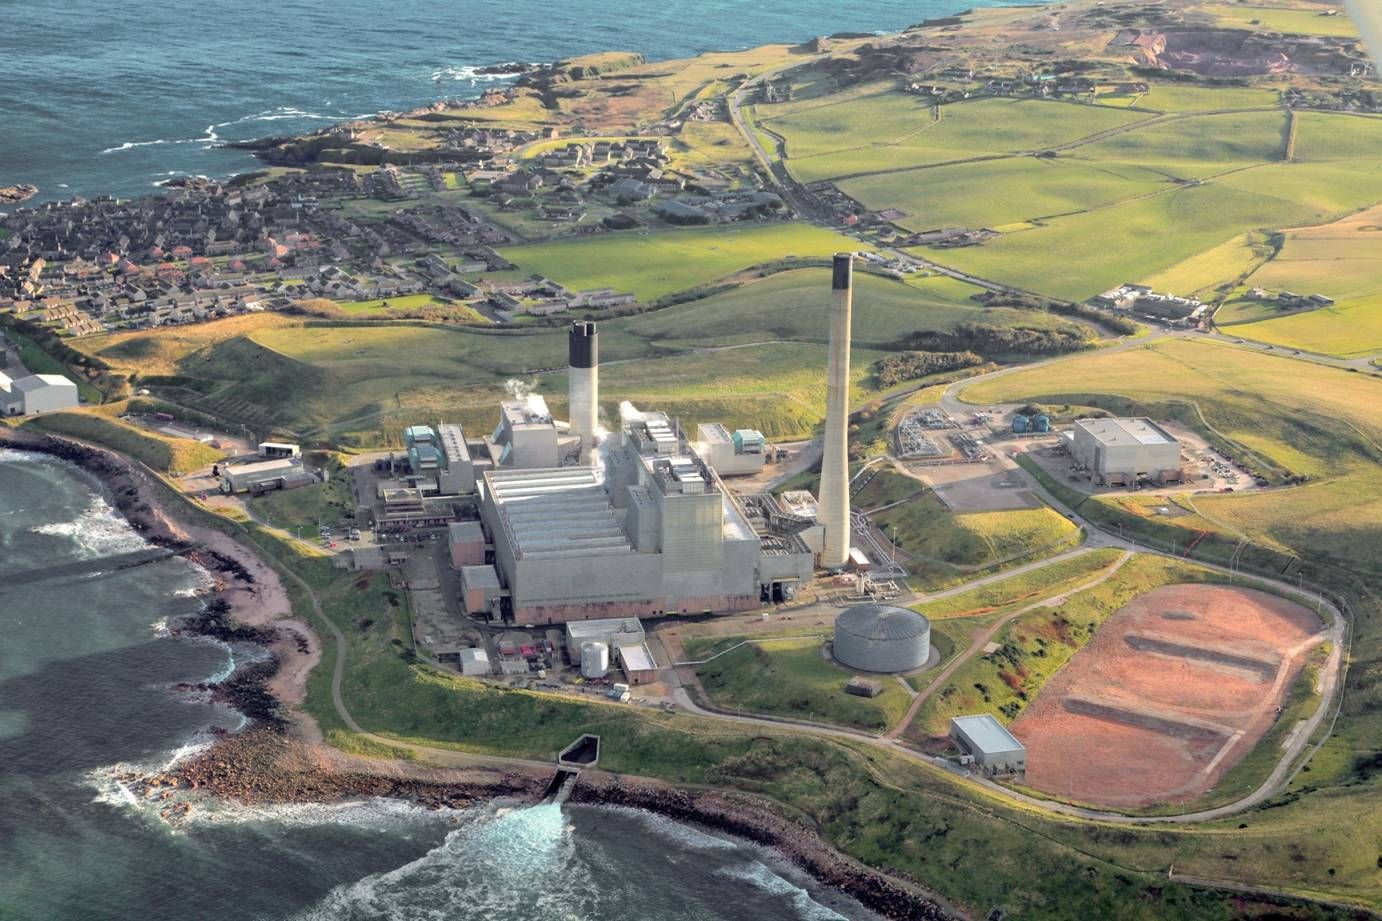 Peterhead power plant, which experienced start-up issues last week